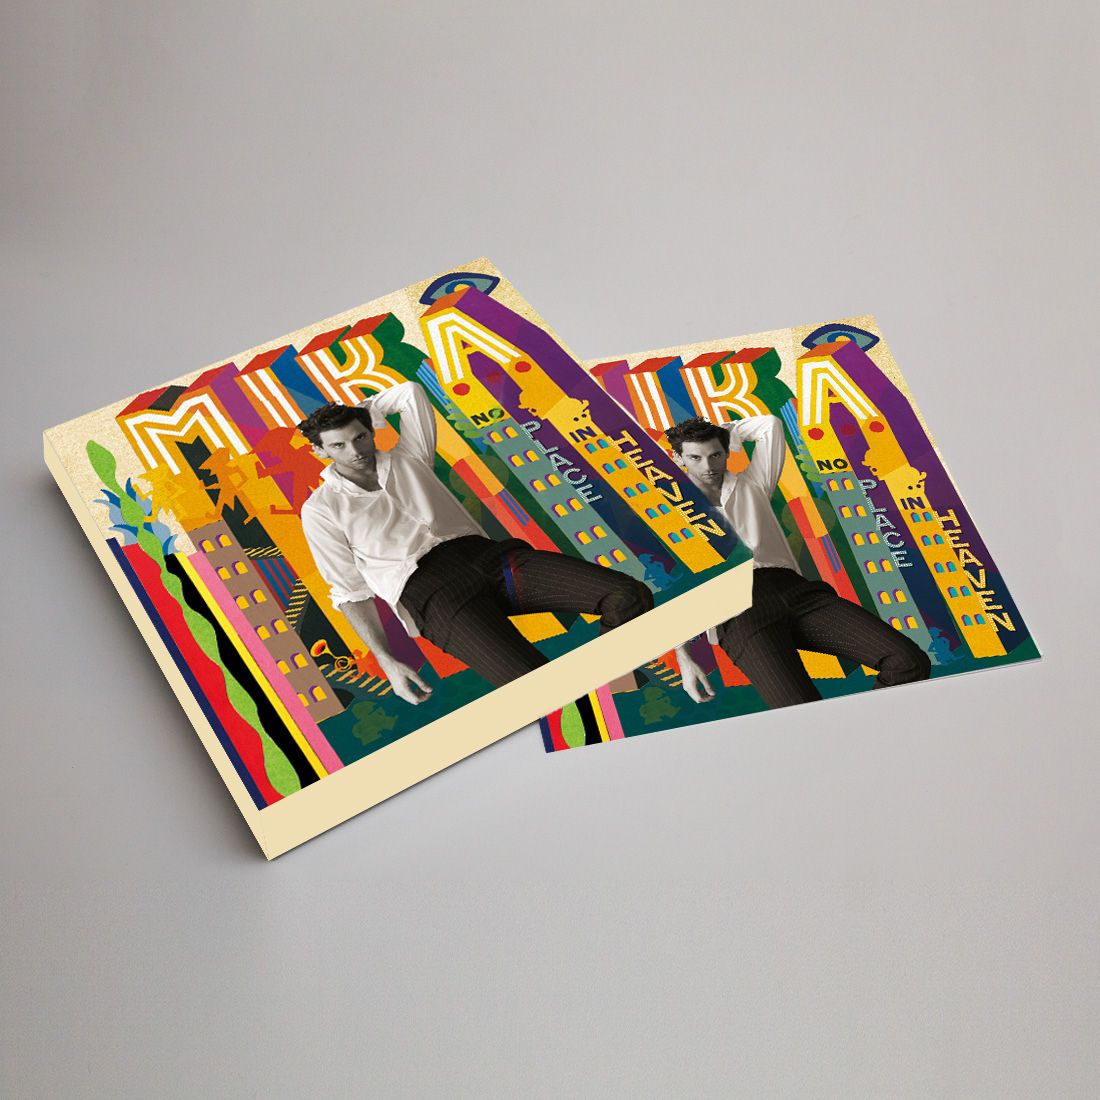 MIKA+-+No+Place+In+Heaven+Signed+Deluxe